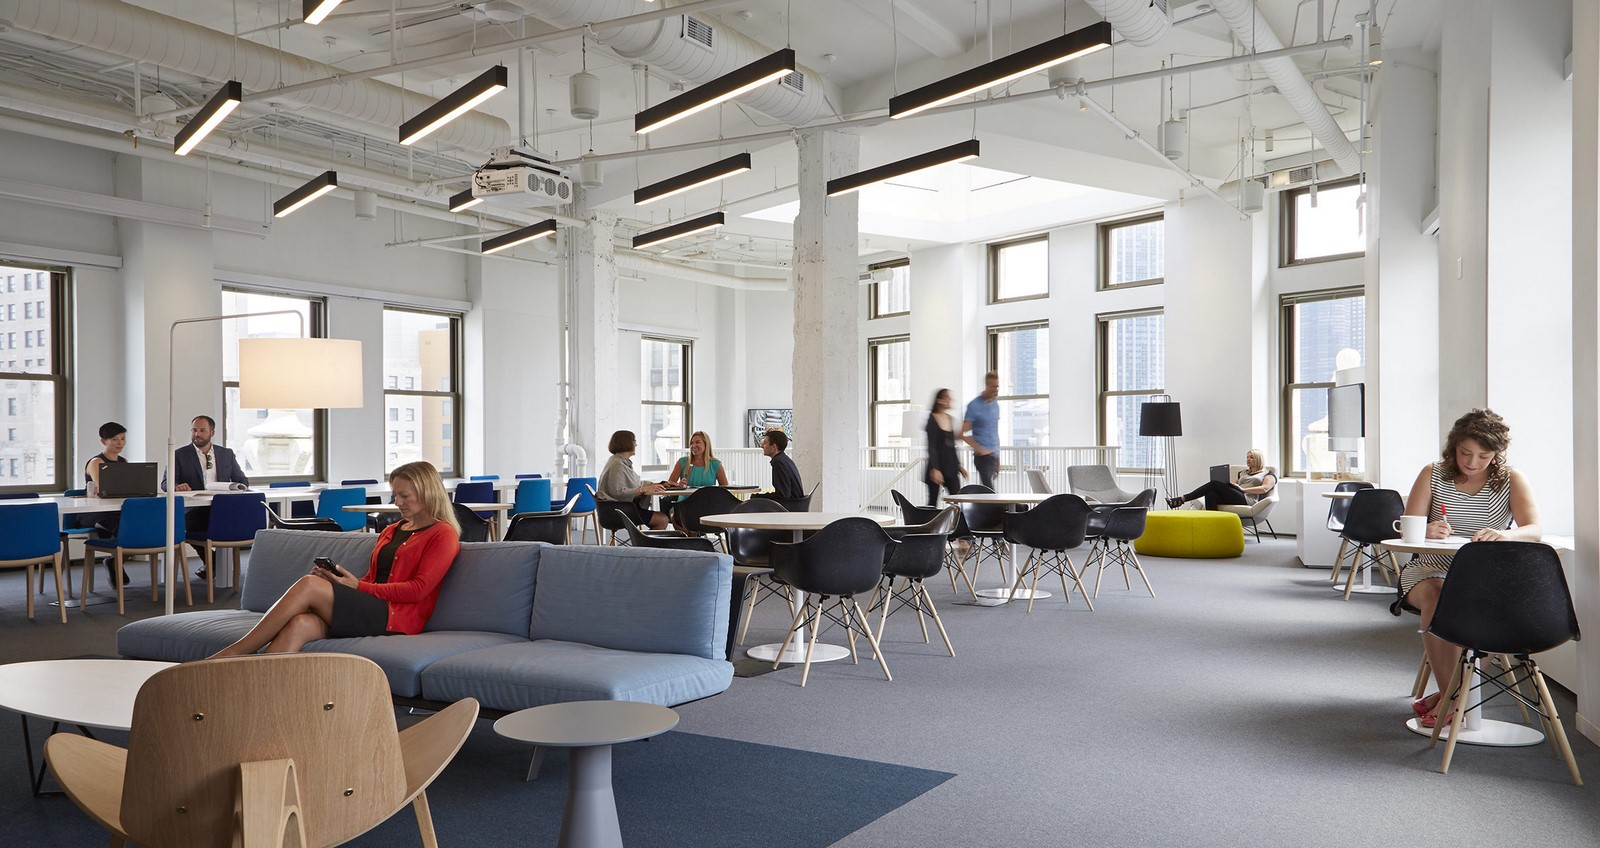 An Inside look at the Studios of Perkins+Will Sheet5